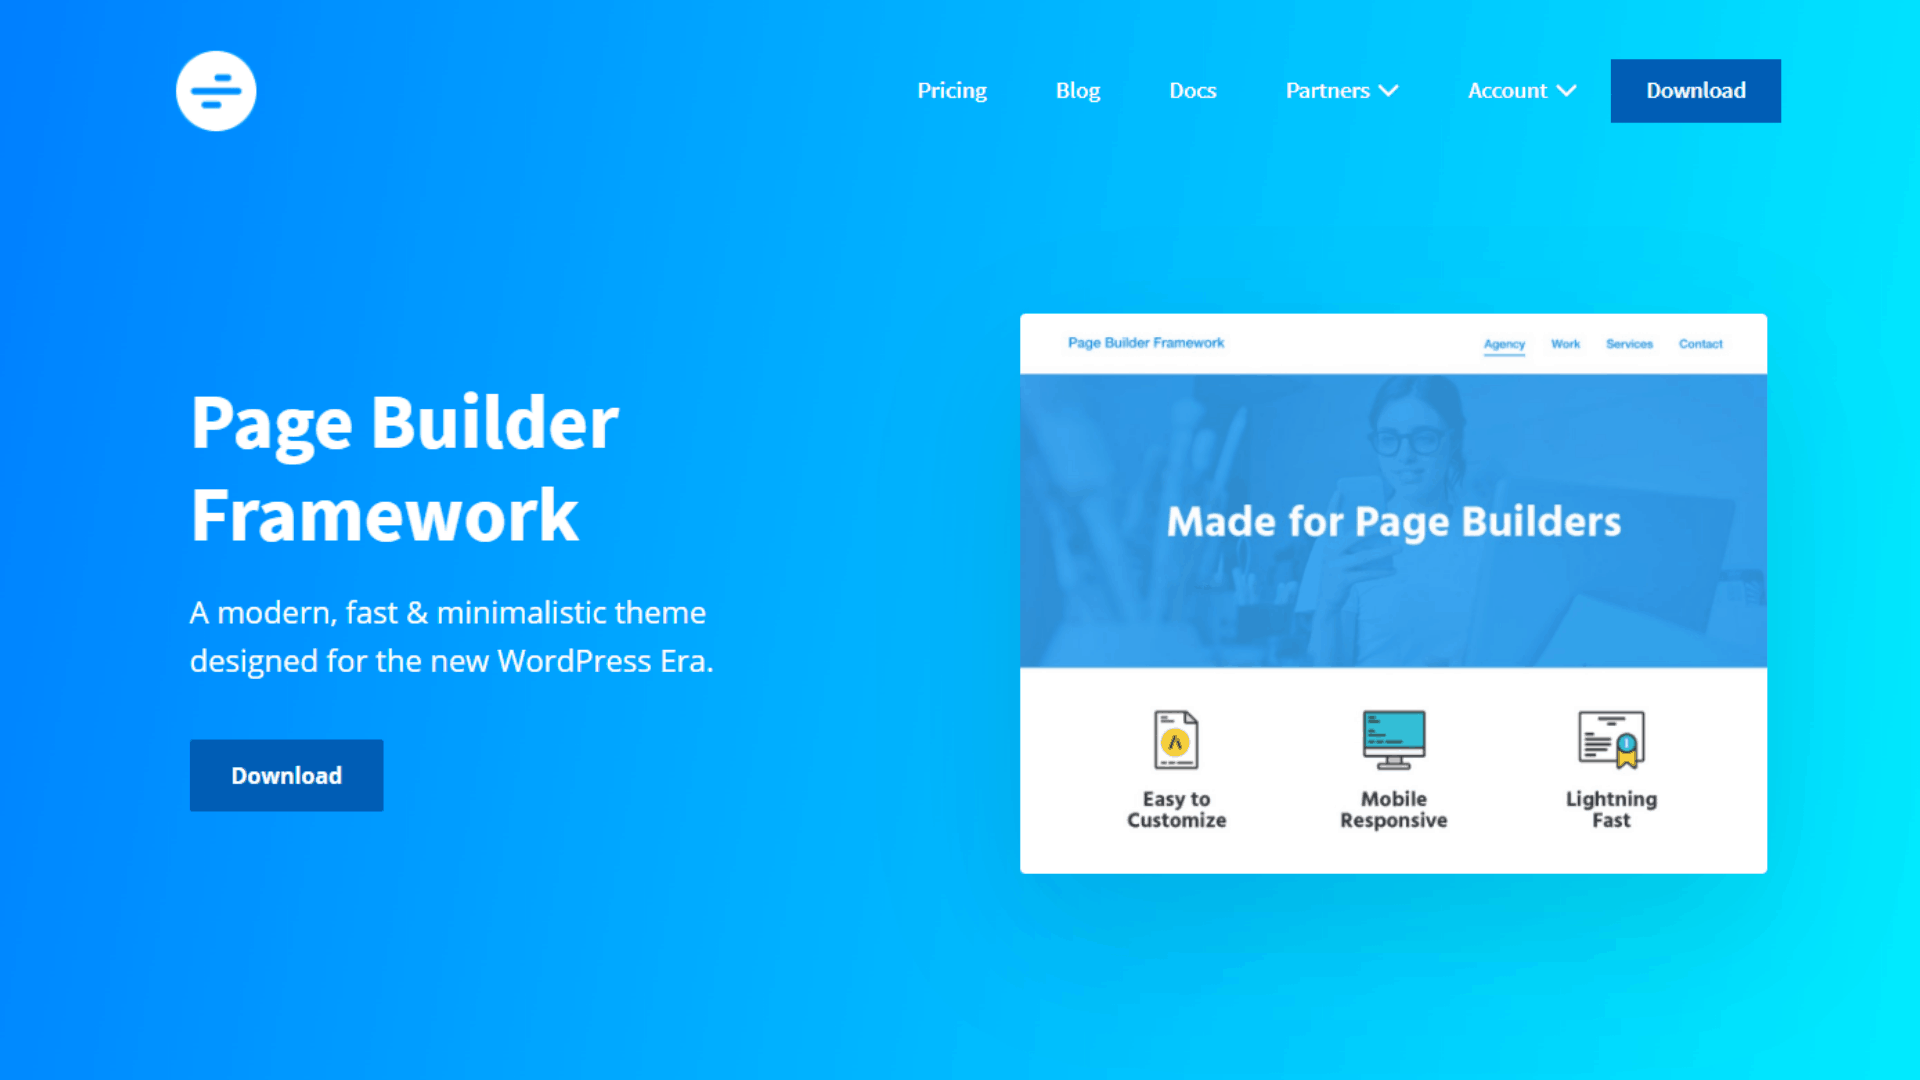 page builder framework home page